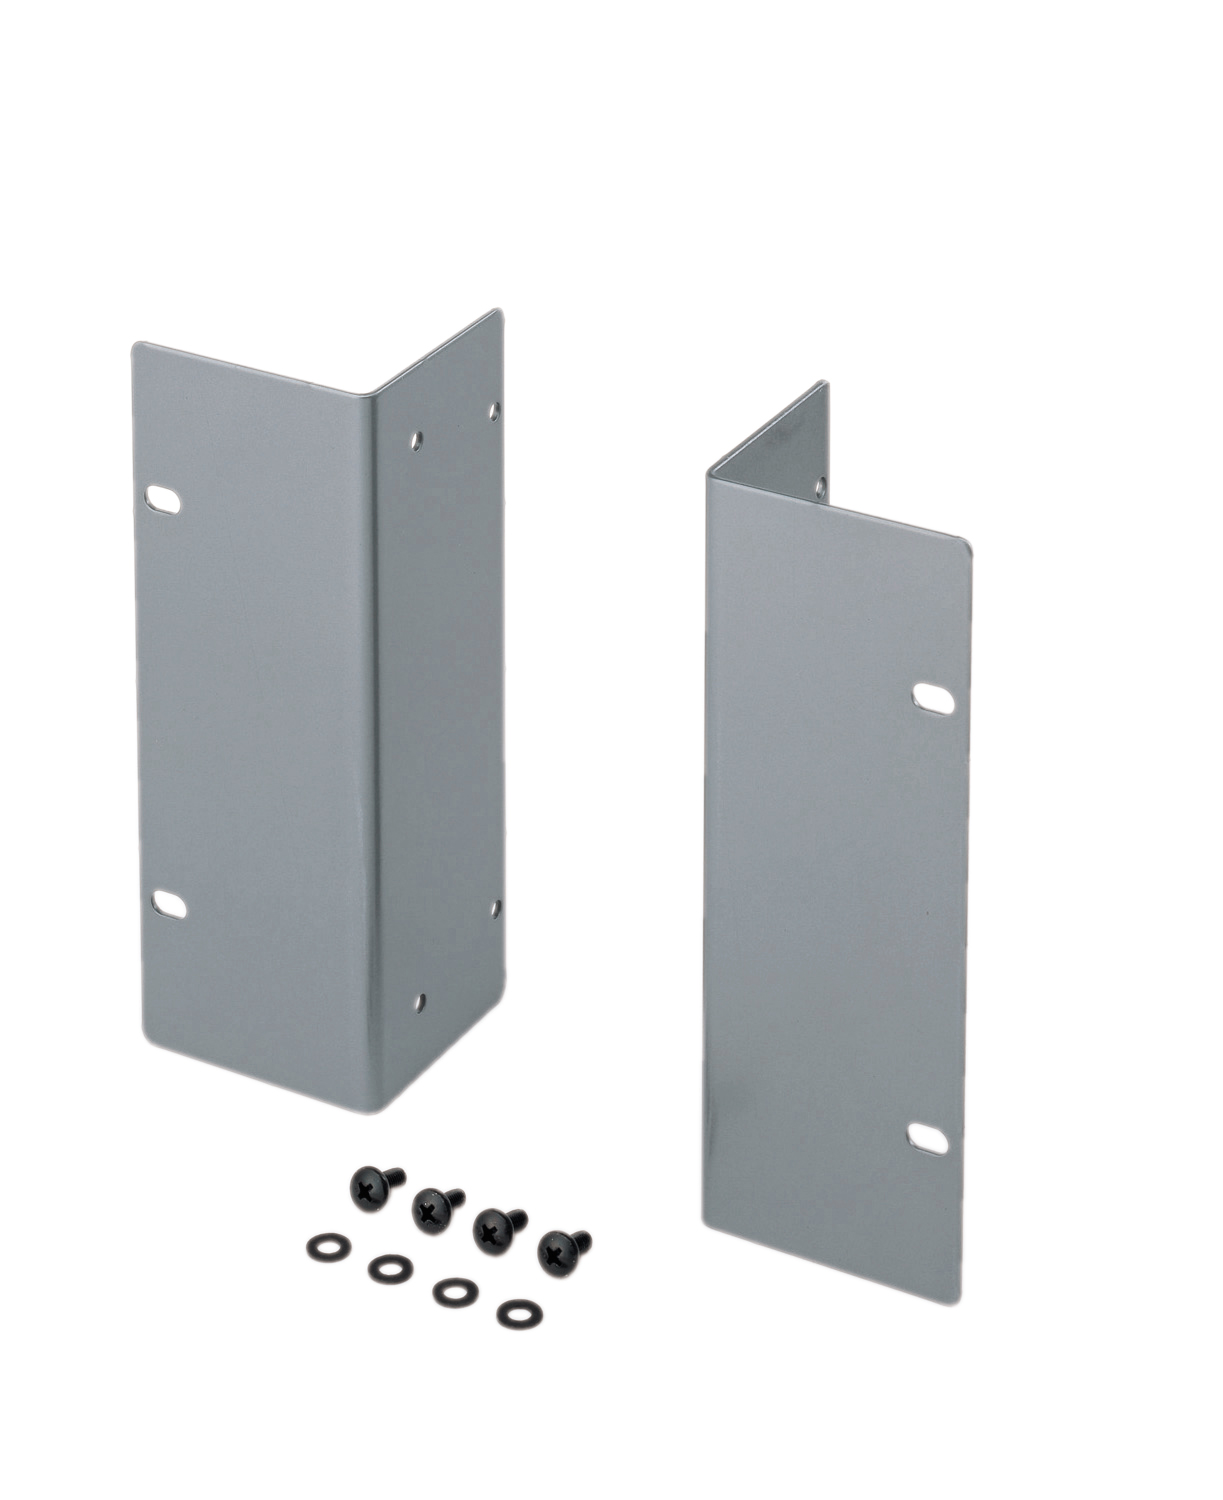 MB-TS900 Rack Mount Bracket Click here for more info